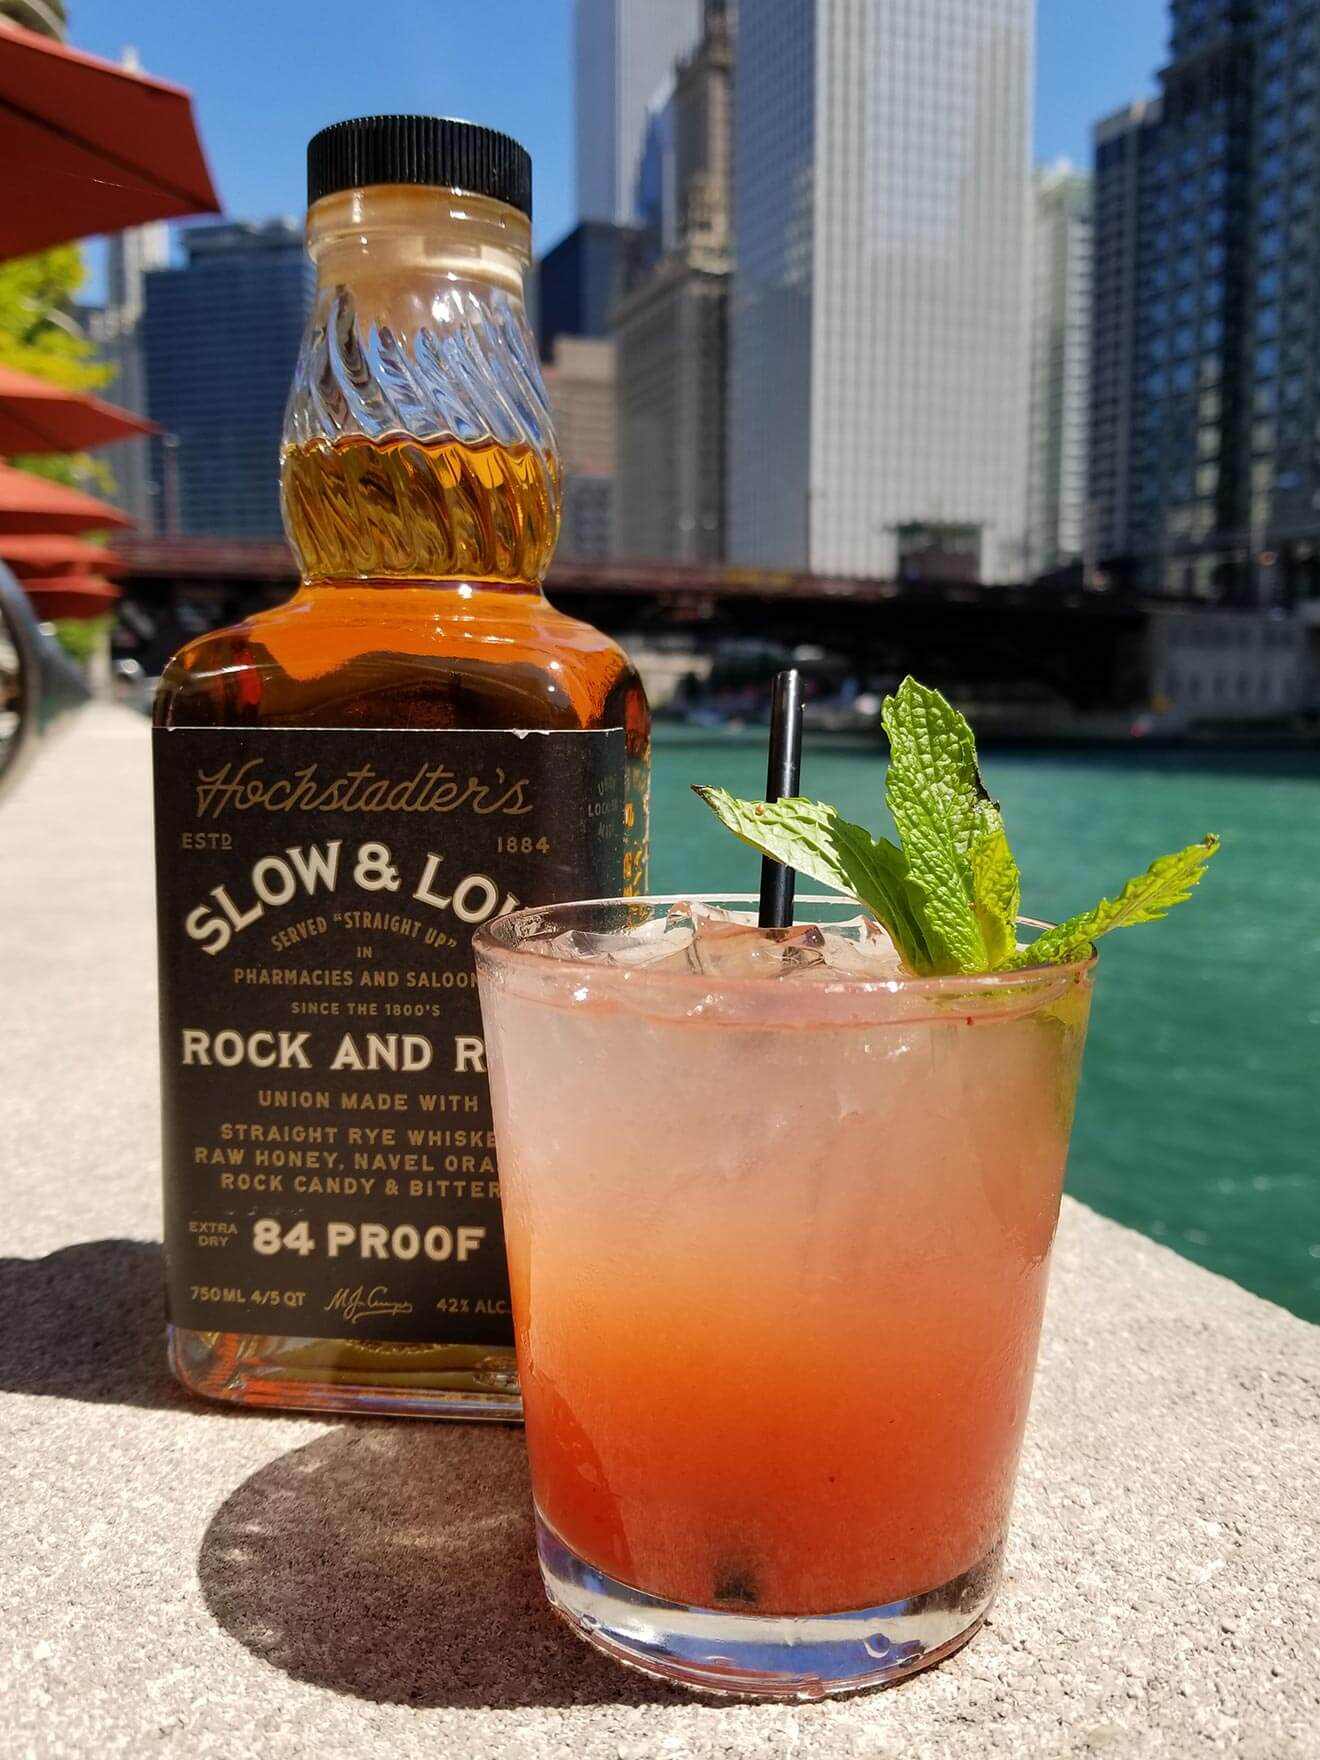 Strawberry Mint Julep, cocktail and bottle poolside